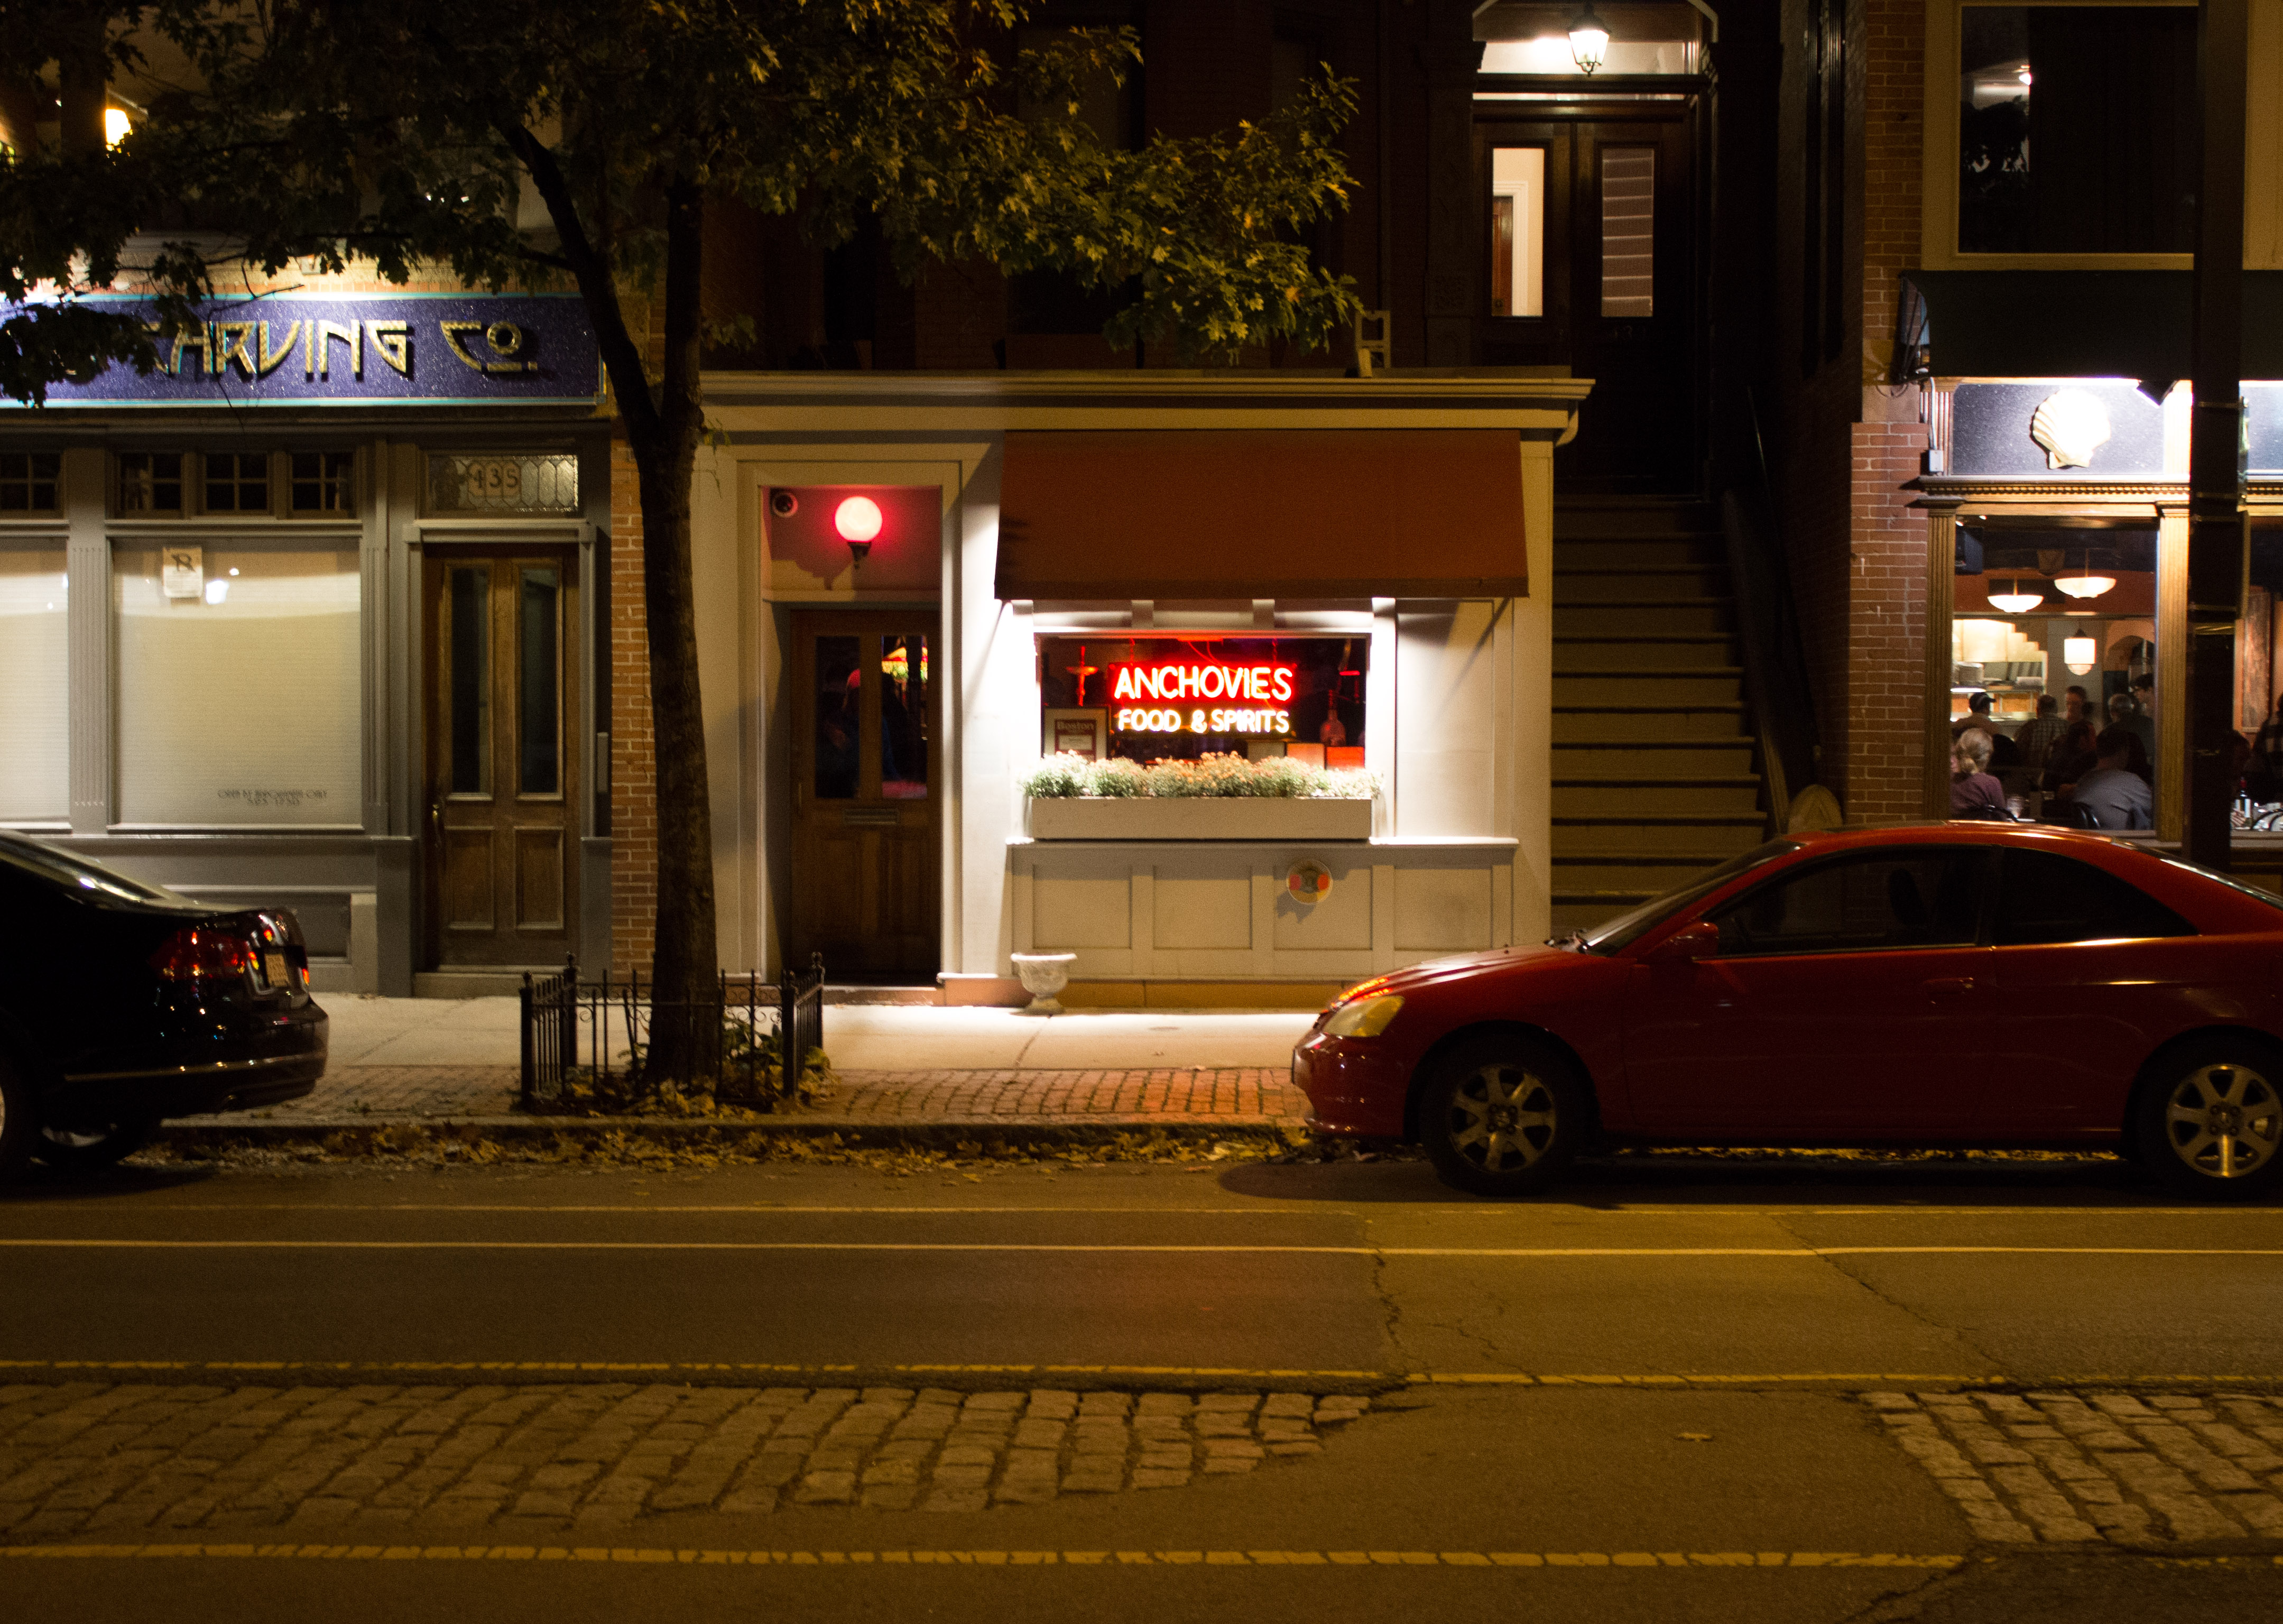 The exterior of Anchovies in the South End, shot from across the street after dark